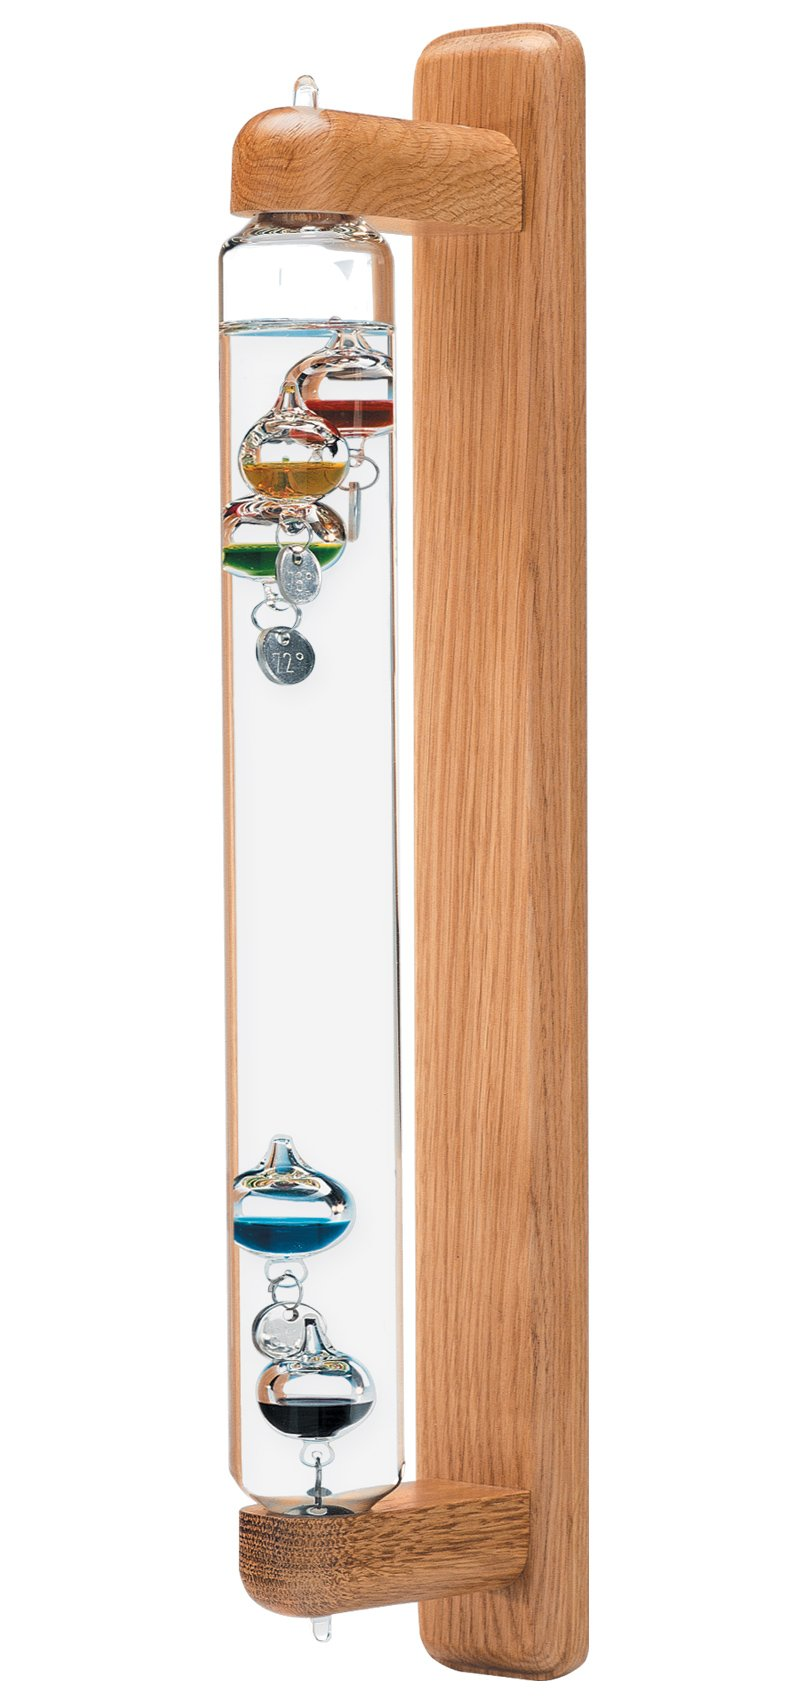 HOKCO Galileo Thermometer Wall Mount Hanging Oak 18 inch